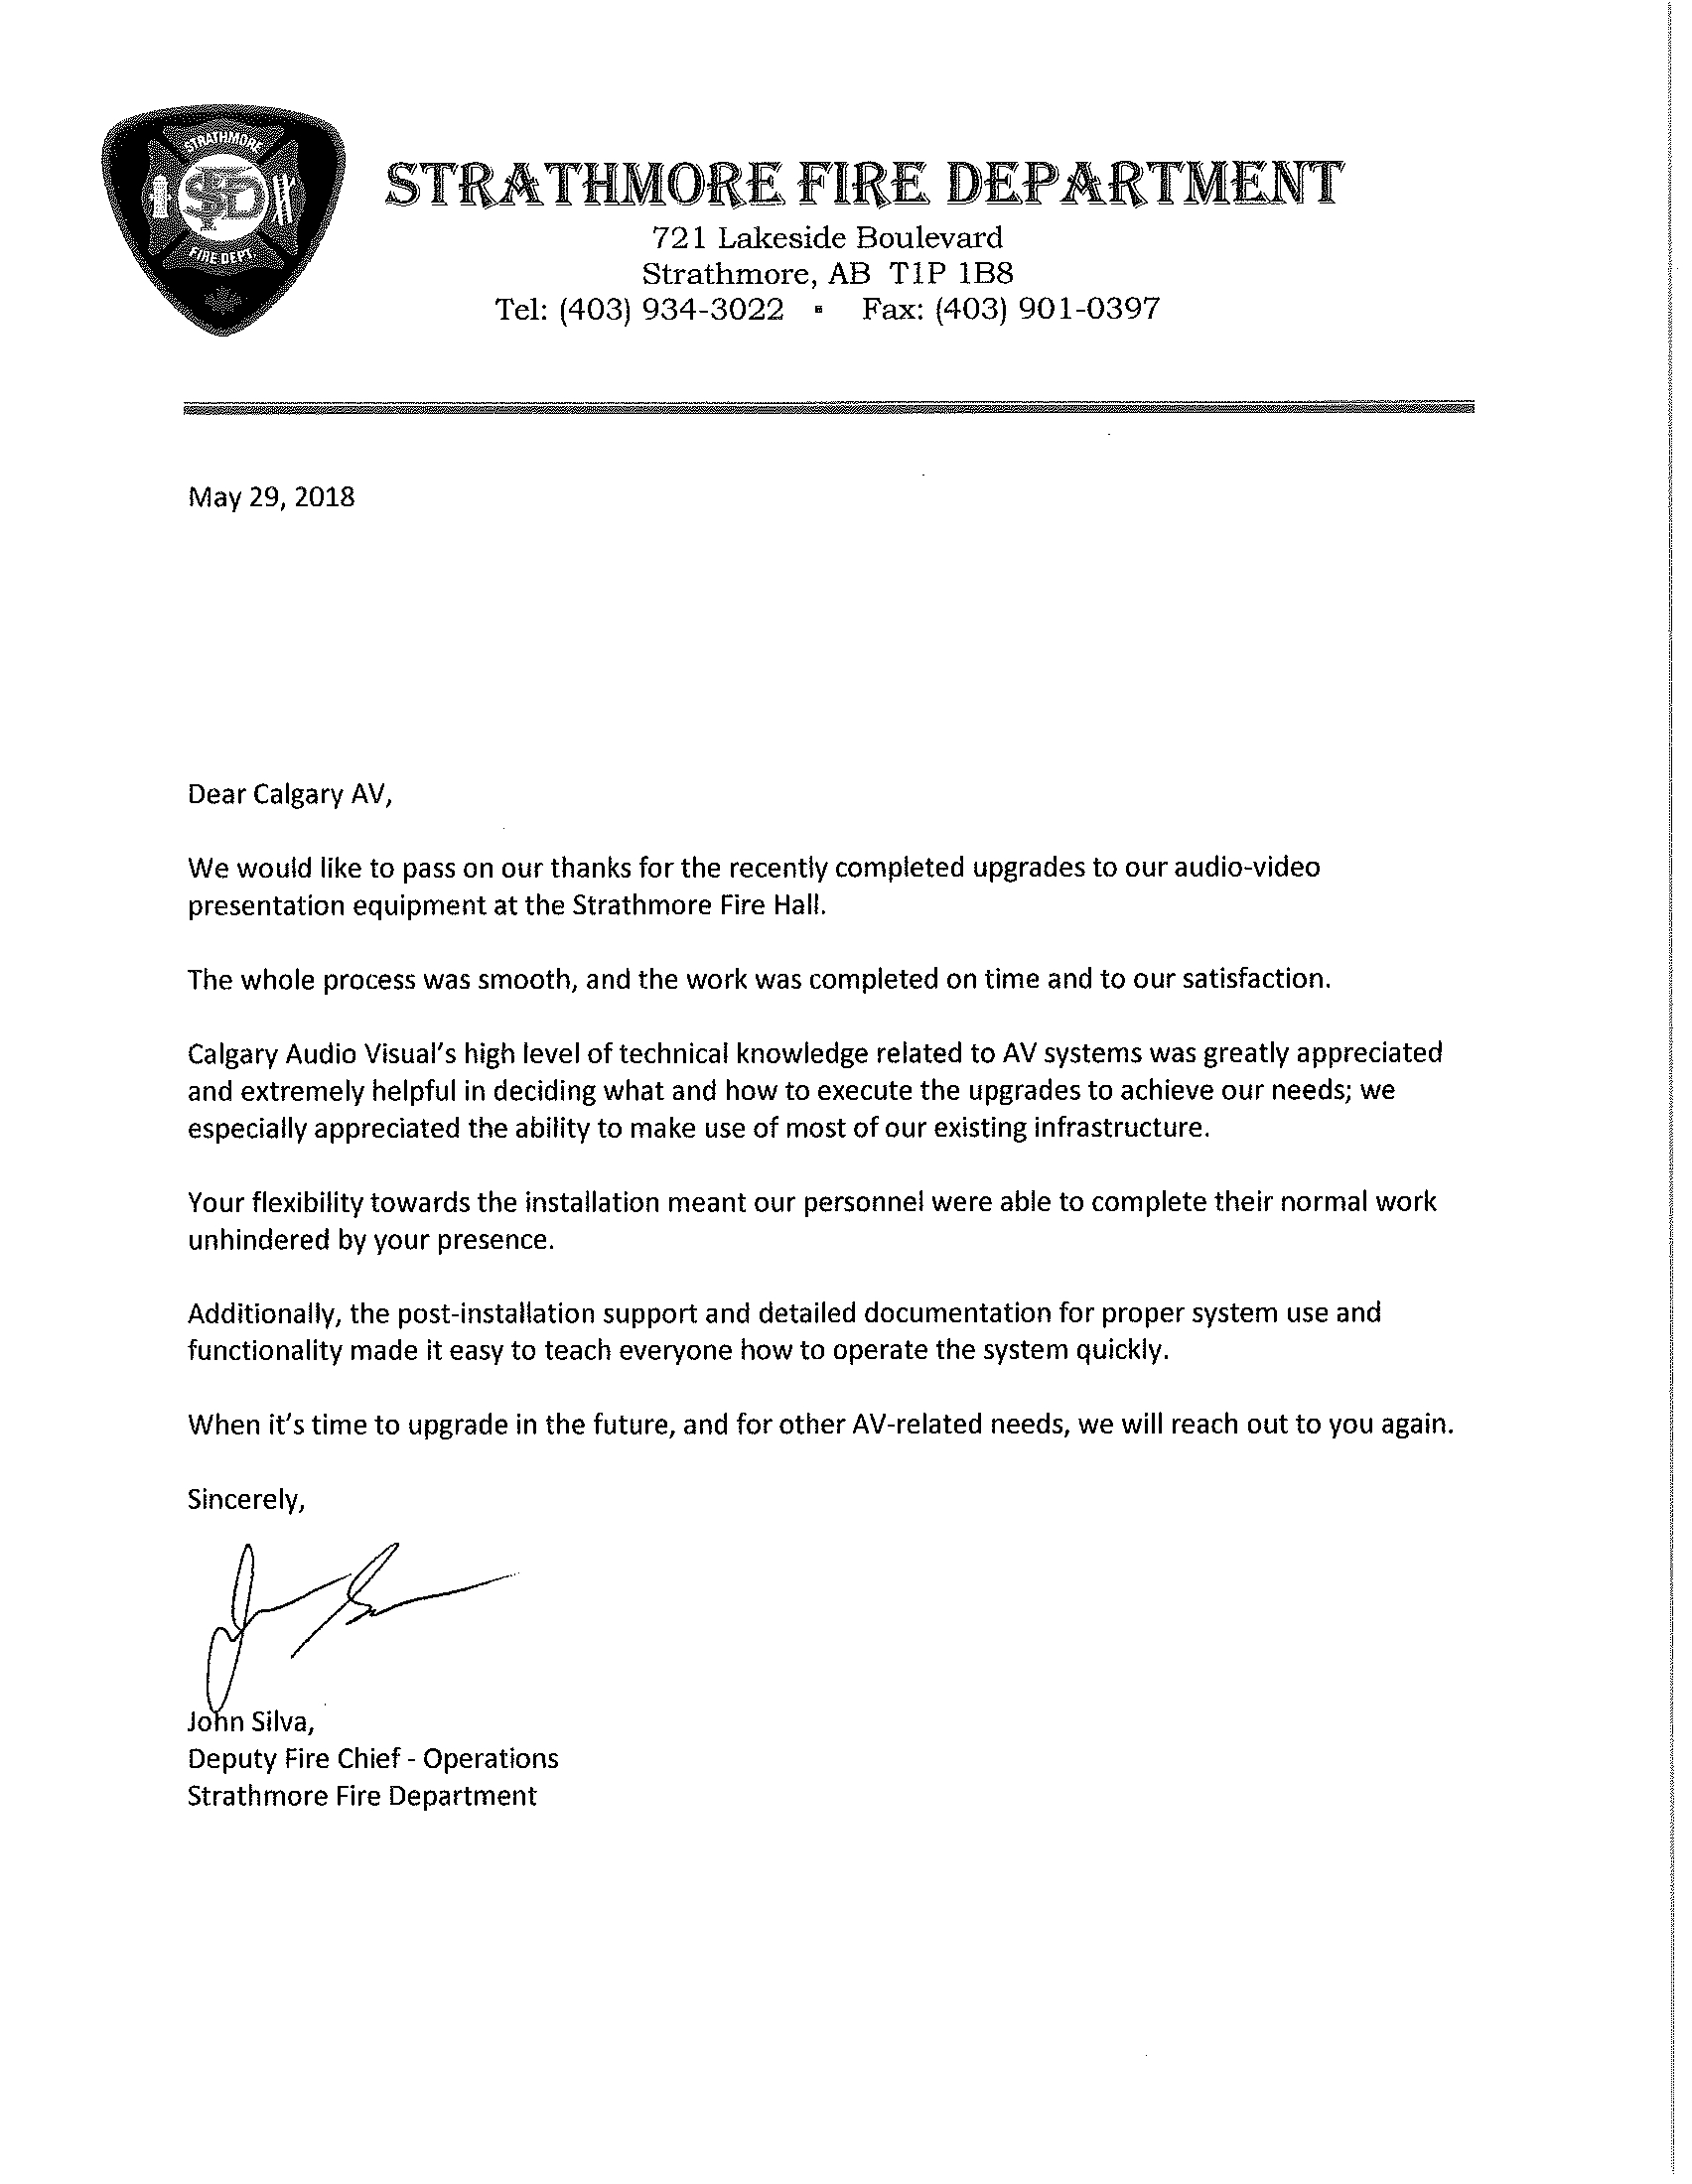 Strathmore Fire Hall Letter - May29-2018.jpg